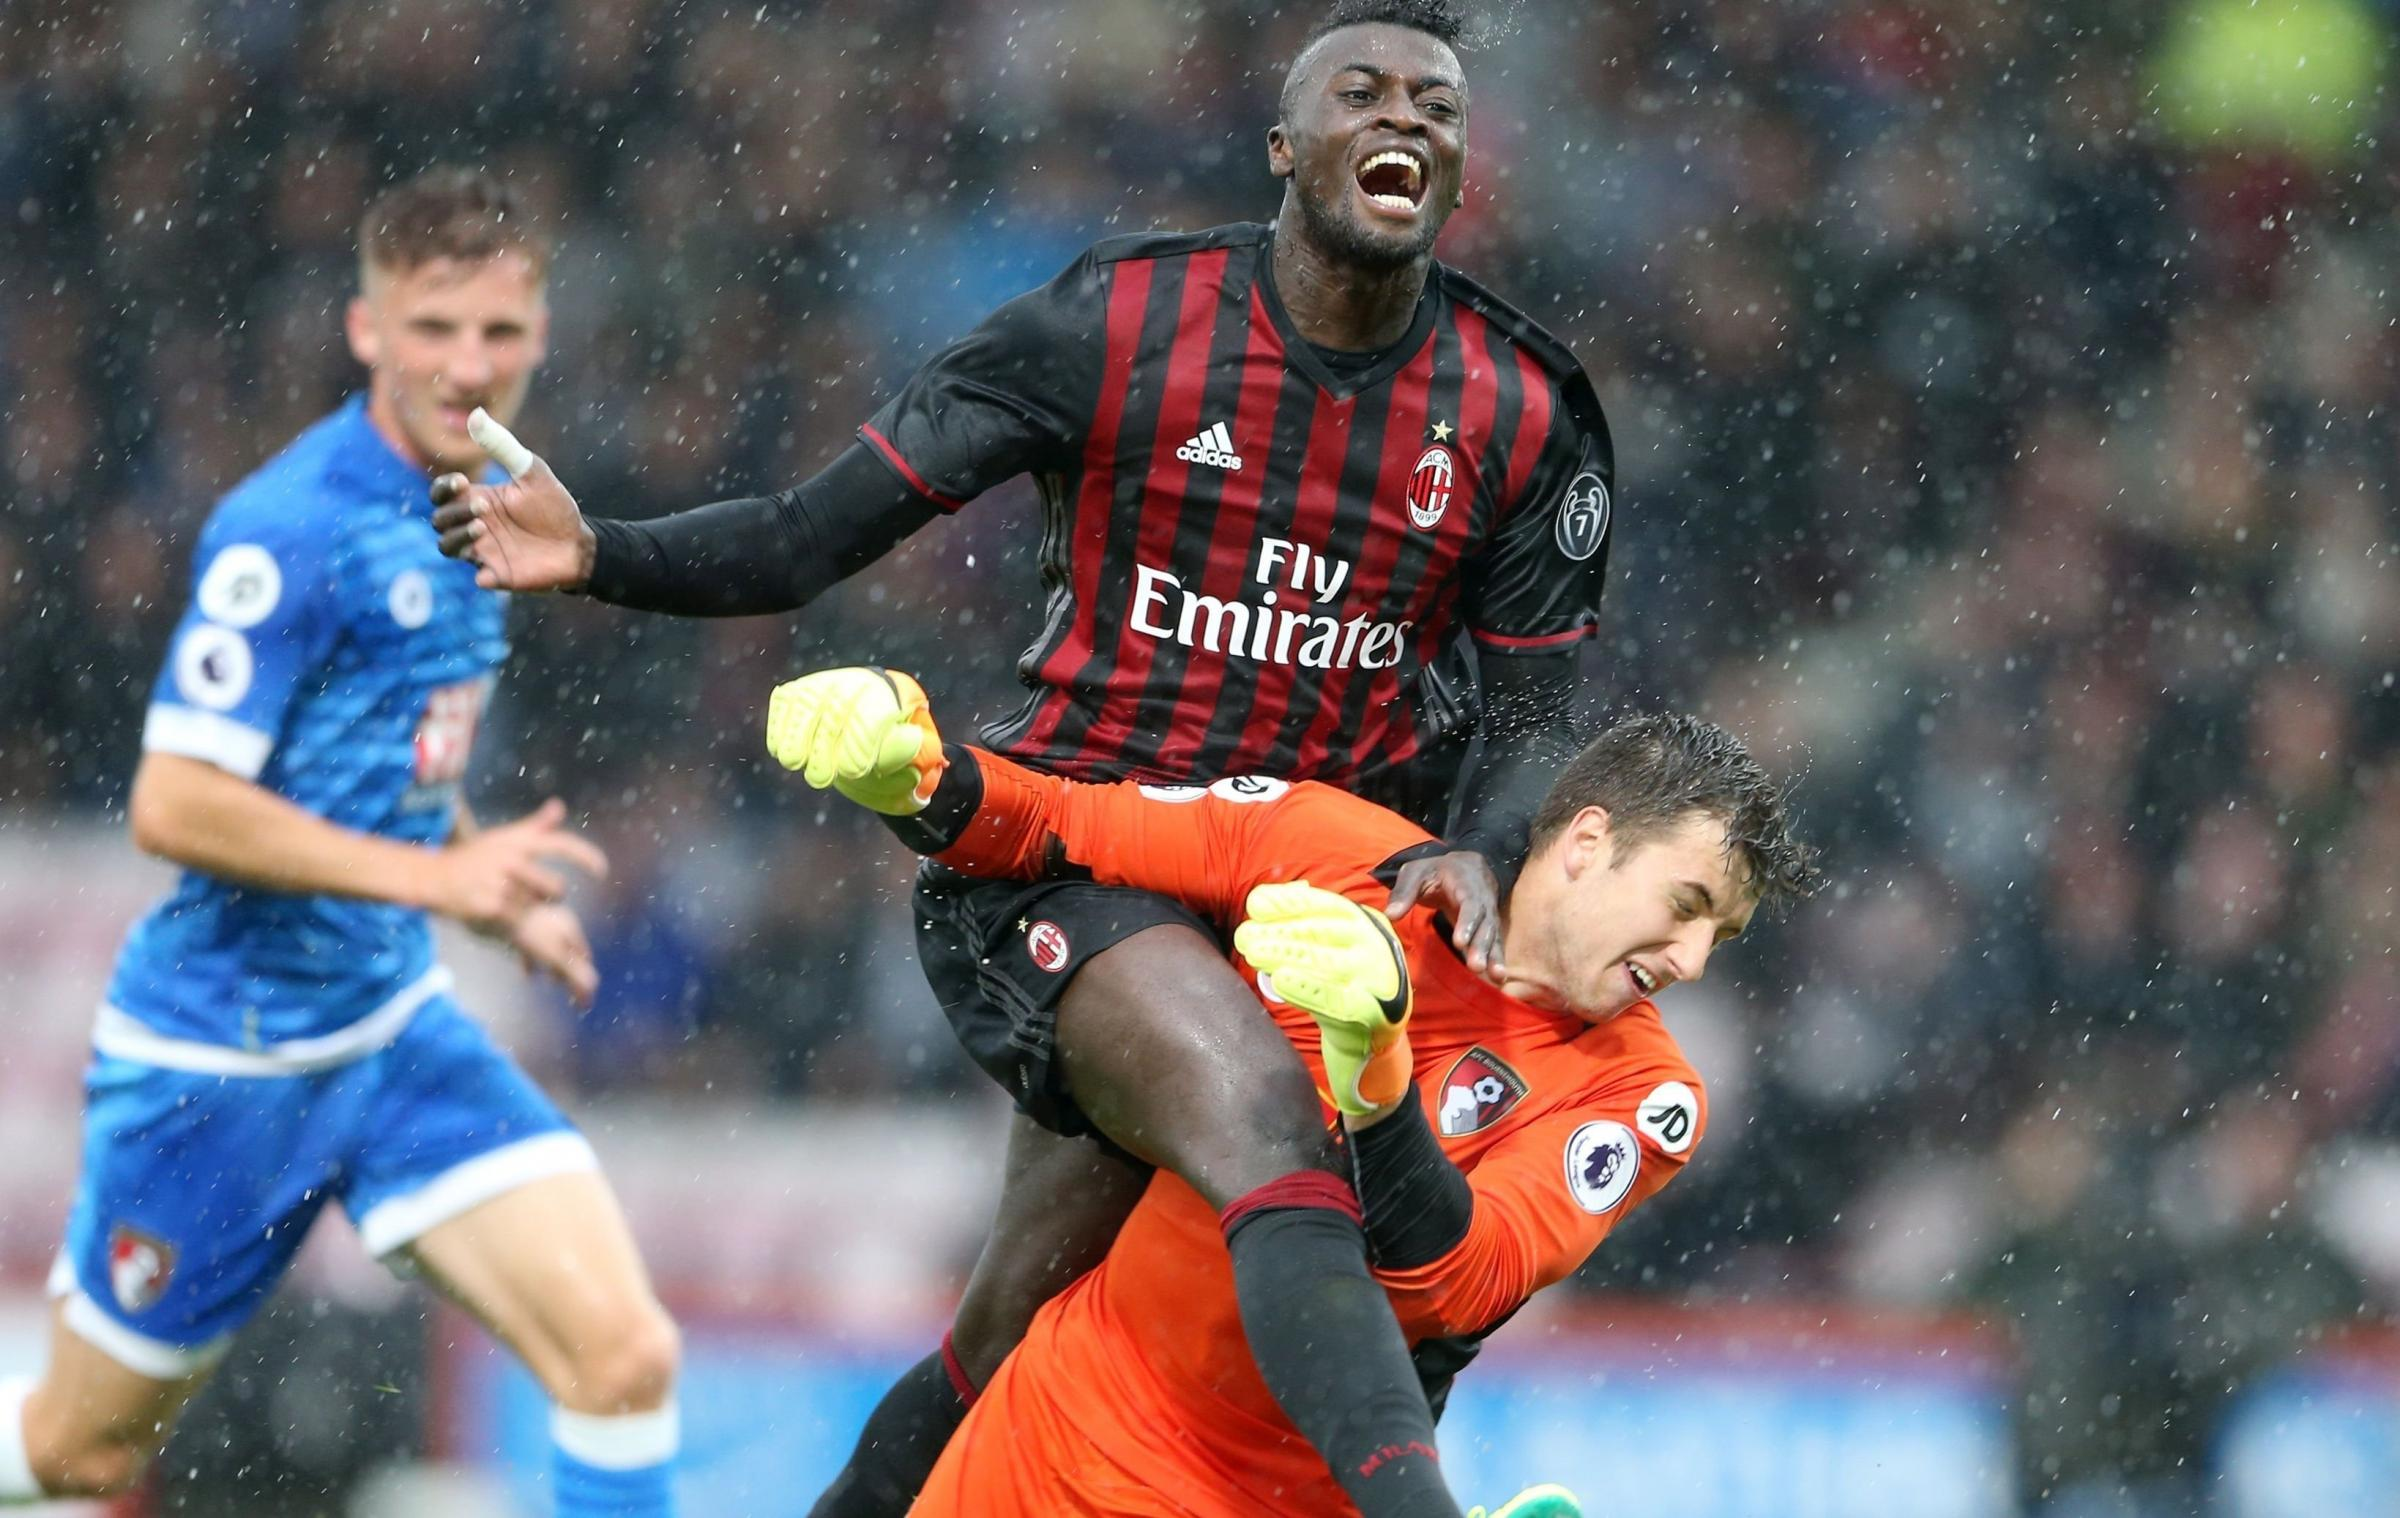 Jordan Holmes, Eastbourne Bororough's new goalkeeper, challenges Milan striker Mbaye Niang